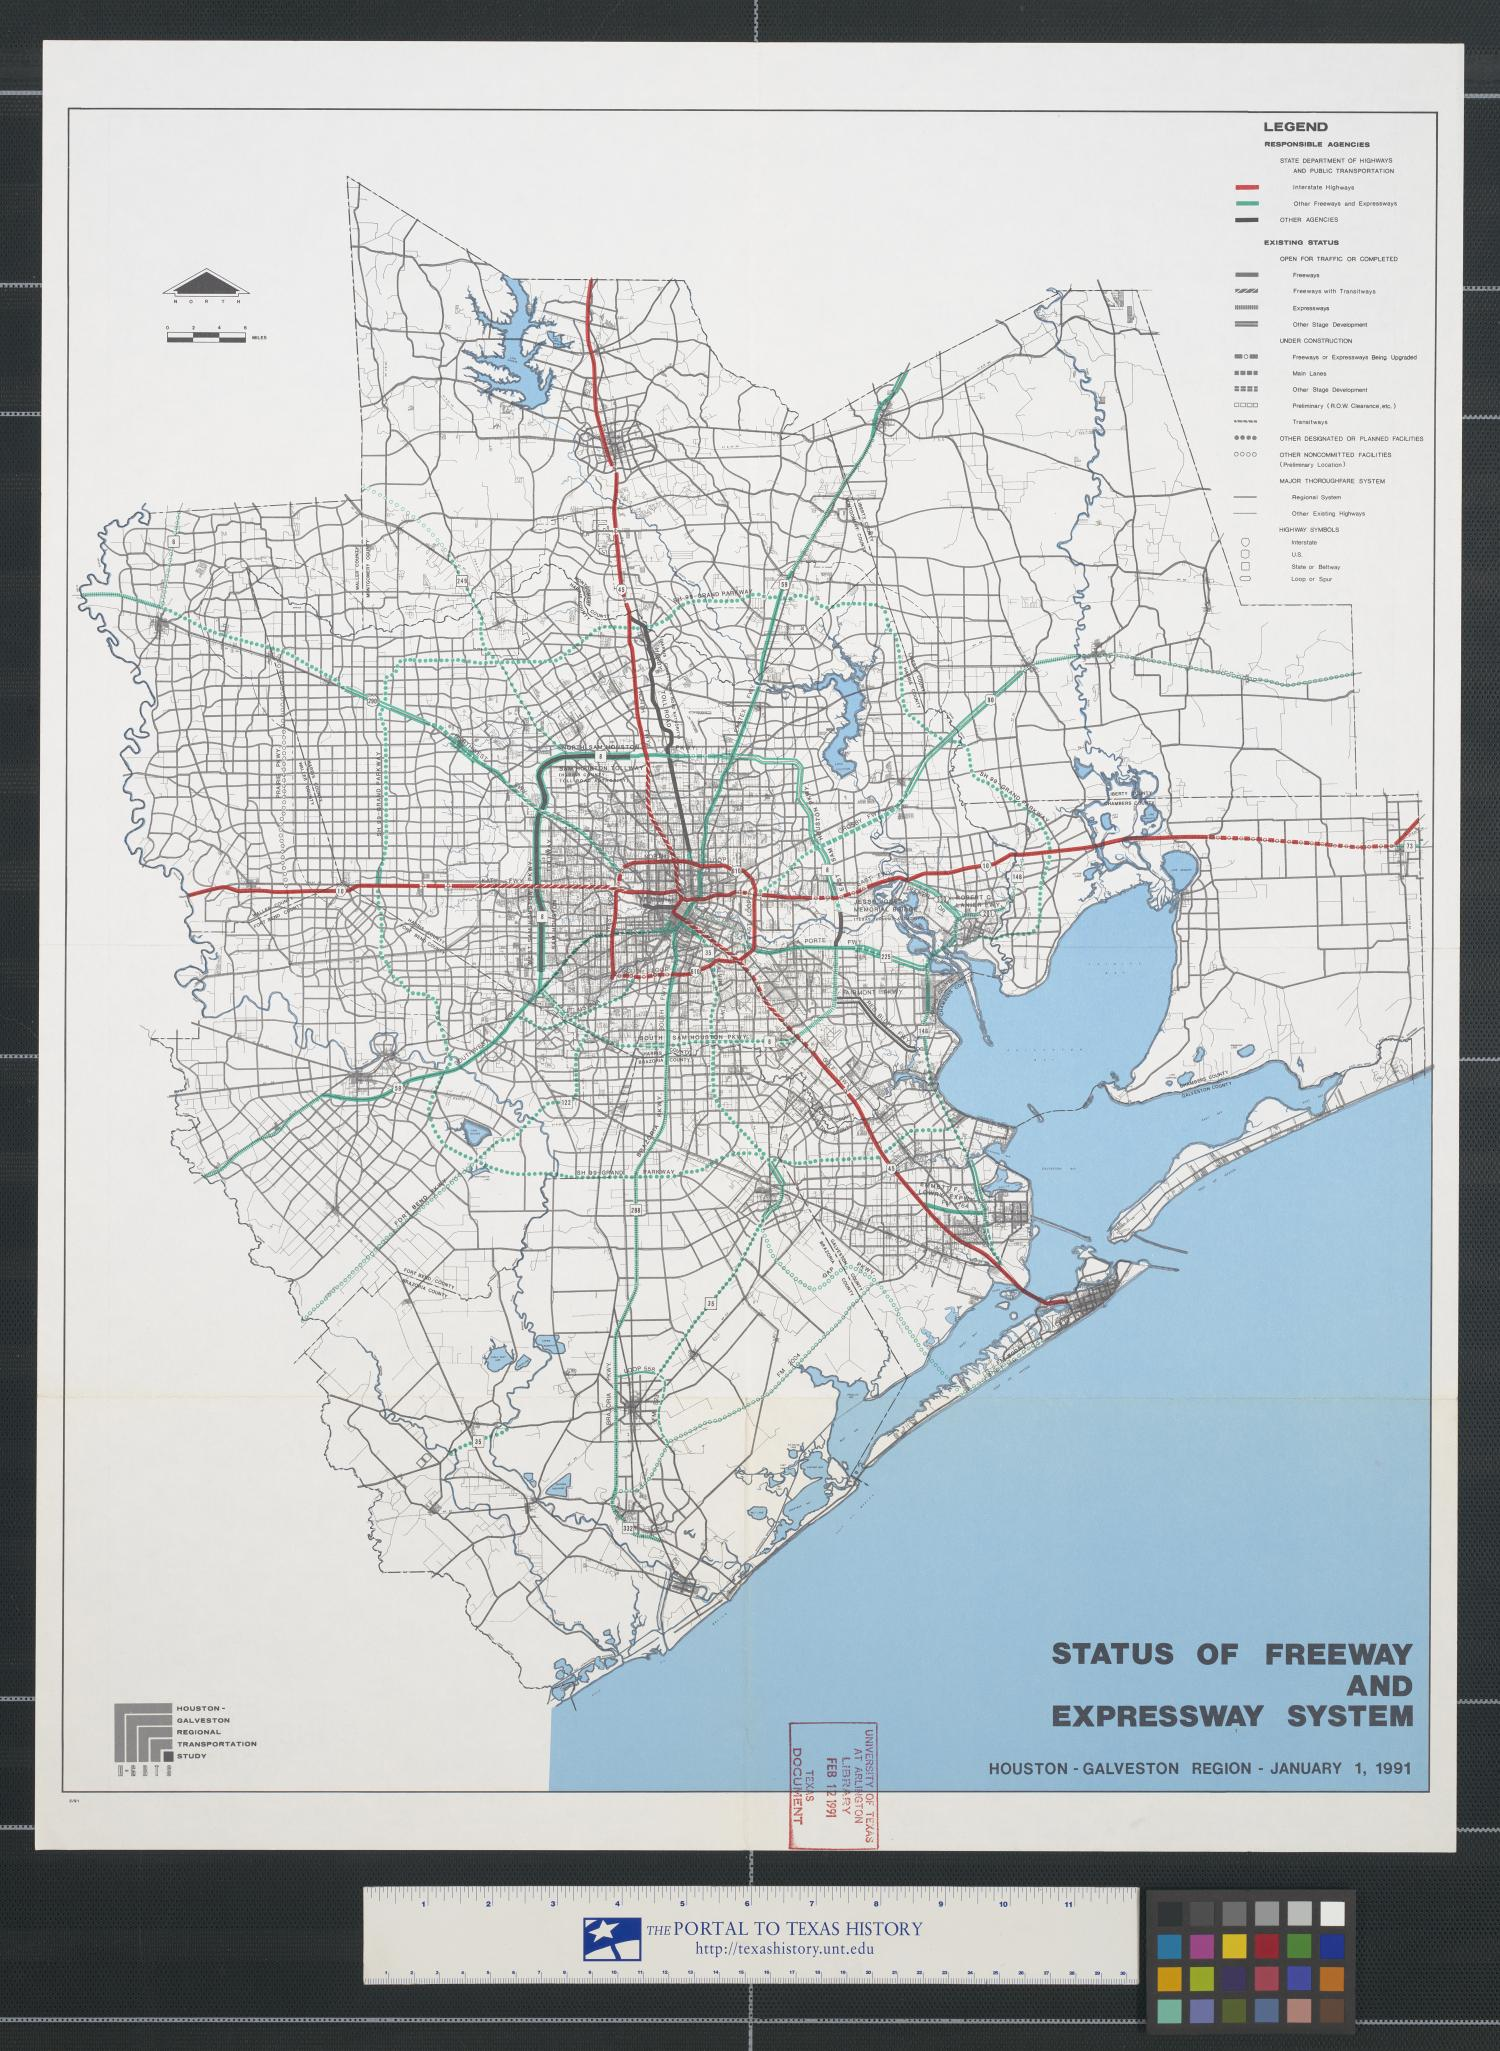 Status of freeway and expressway system : Houston-Galveston Region, January 1, 1991.                                                                                                      [Sequence #]: 1 of 2